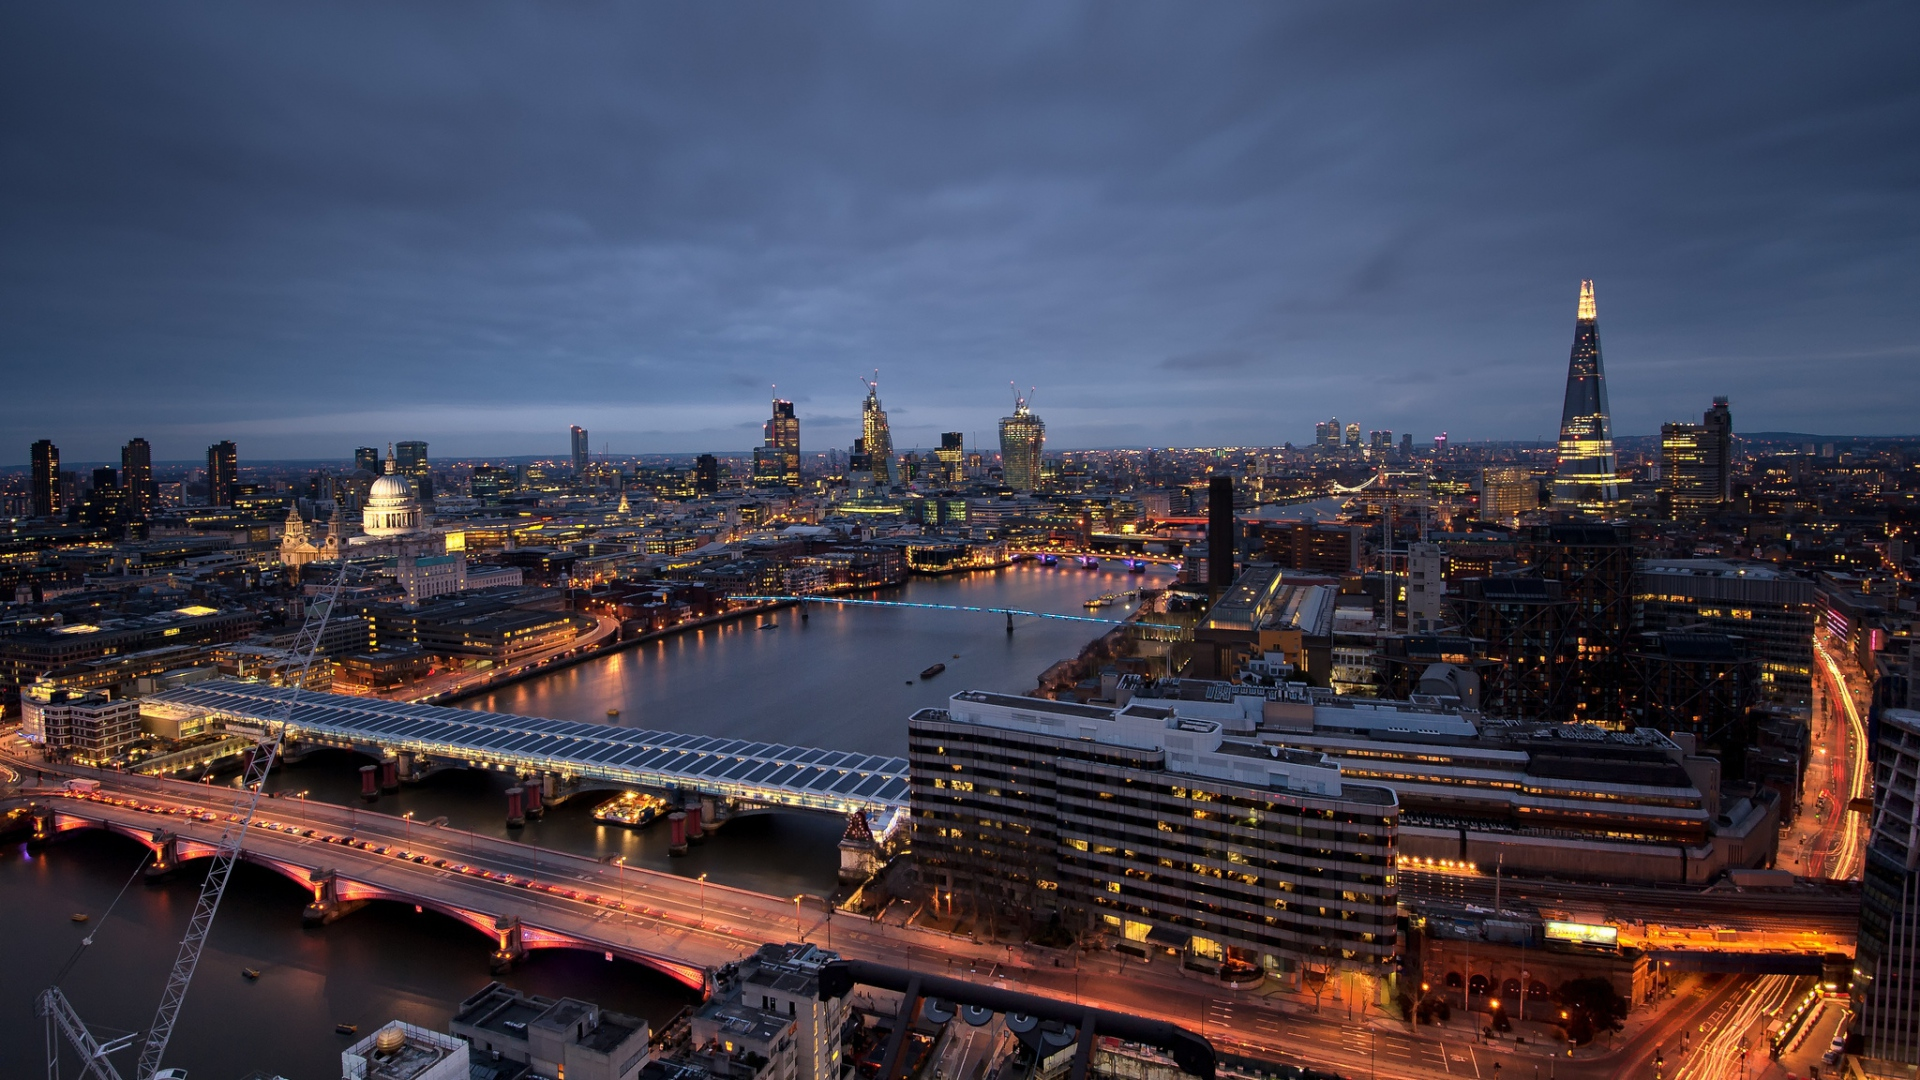 download wallpaper 1920x1080 england, uk, london, canary wharf